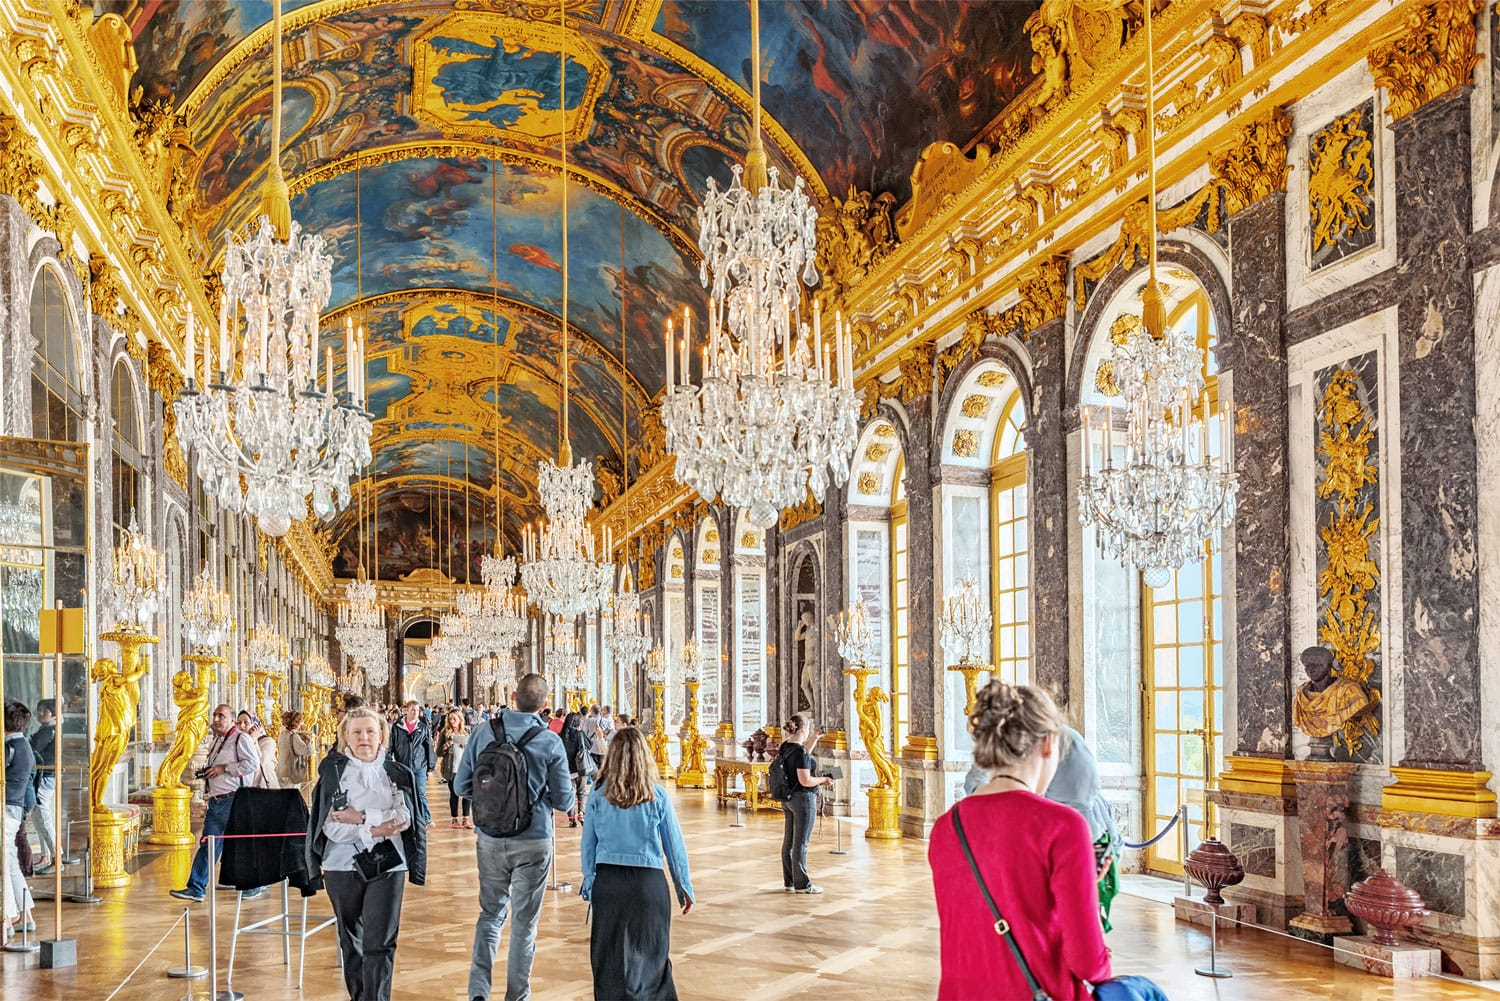 Hall of Mirrors (Galerie des Glaces )- is the palace's most celebrated room. Chateau de Versailles in Paris, France